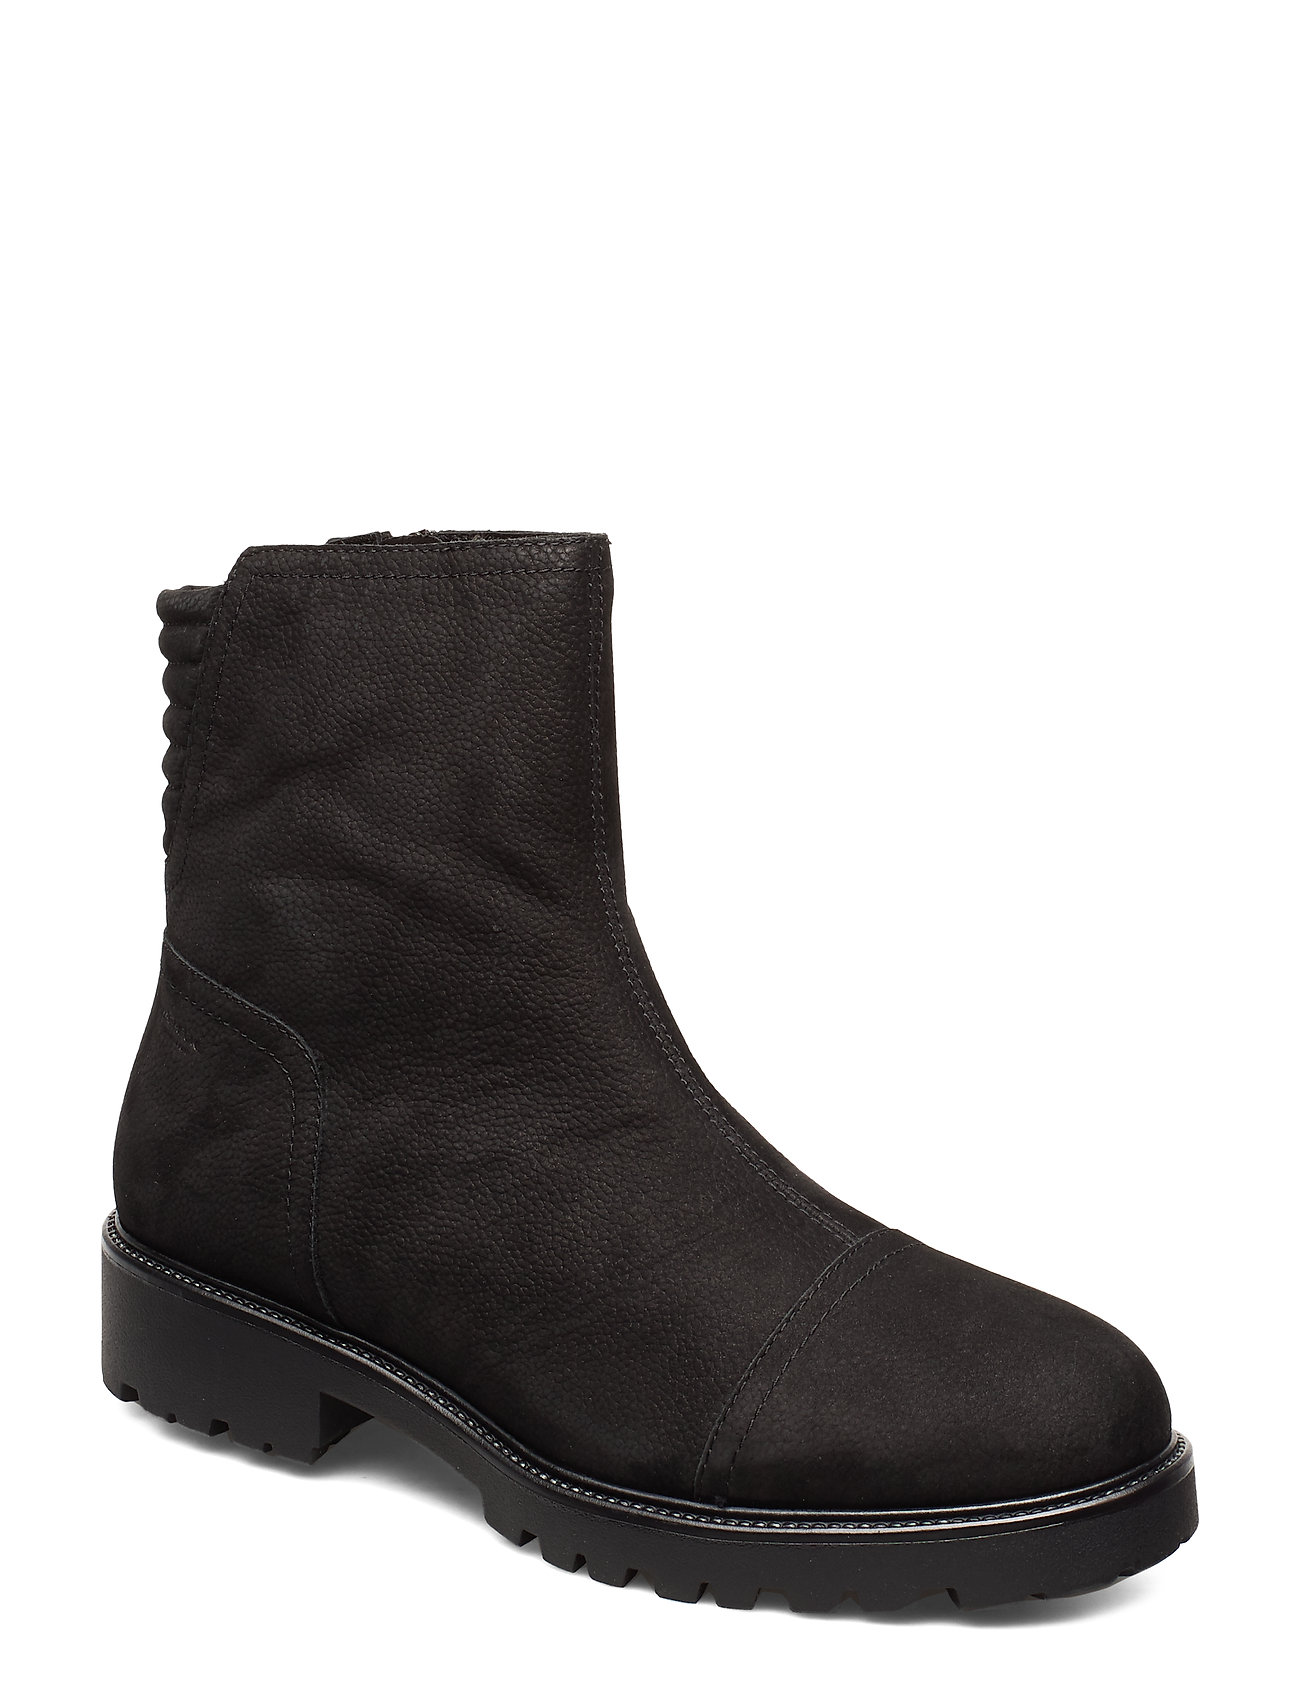 Image of Kenova Shoes Boots Ankle Boots Ankle Boots Flat Heel Sort VAGABOND (3239058495)